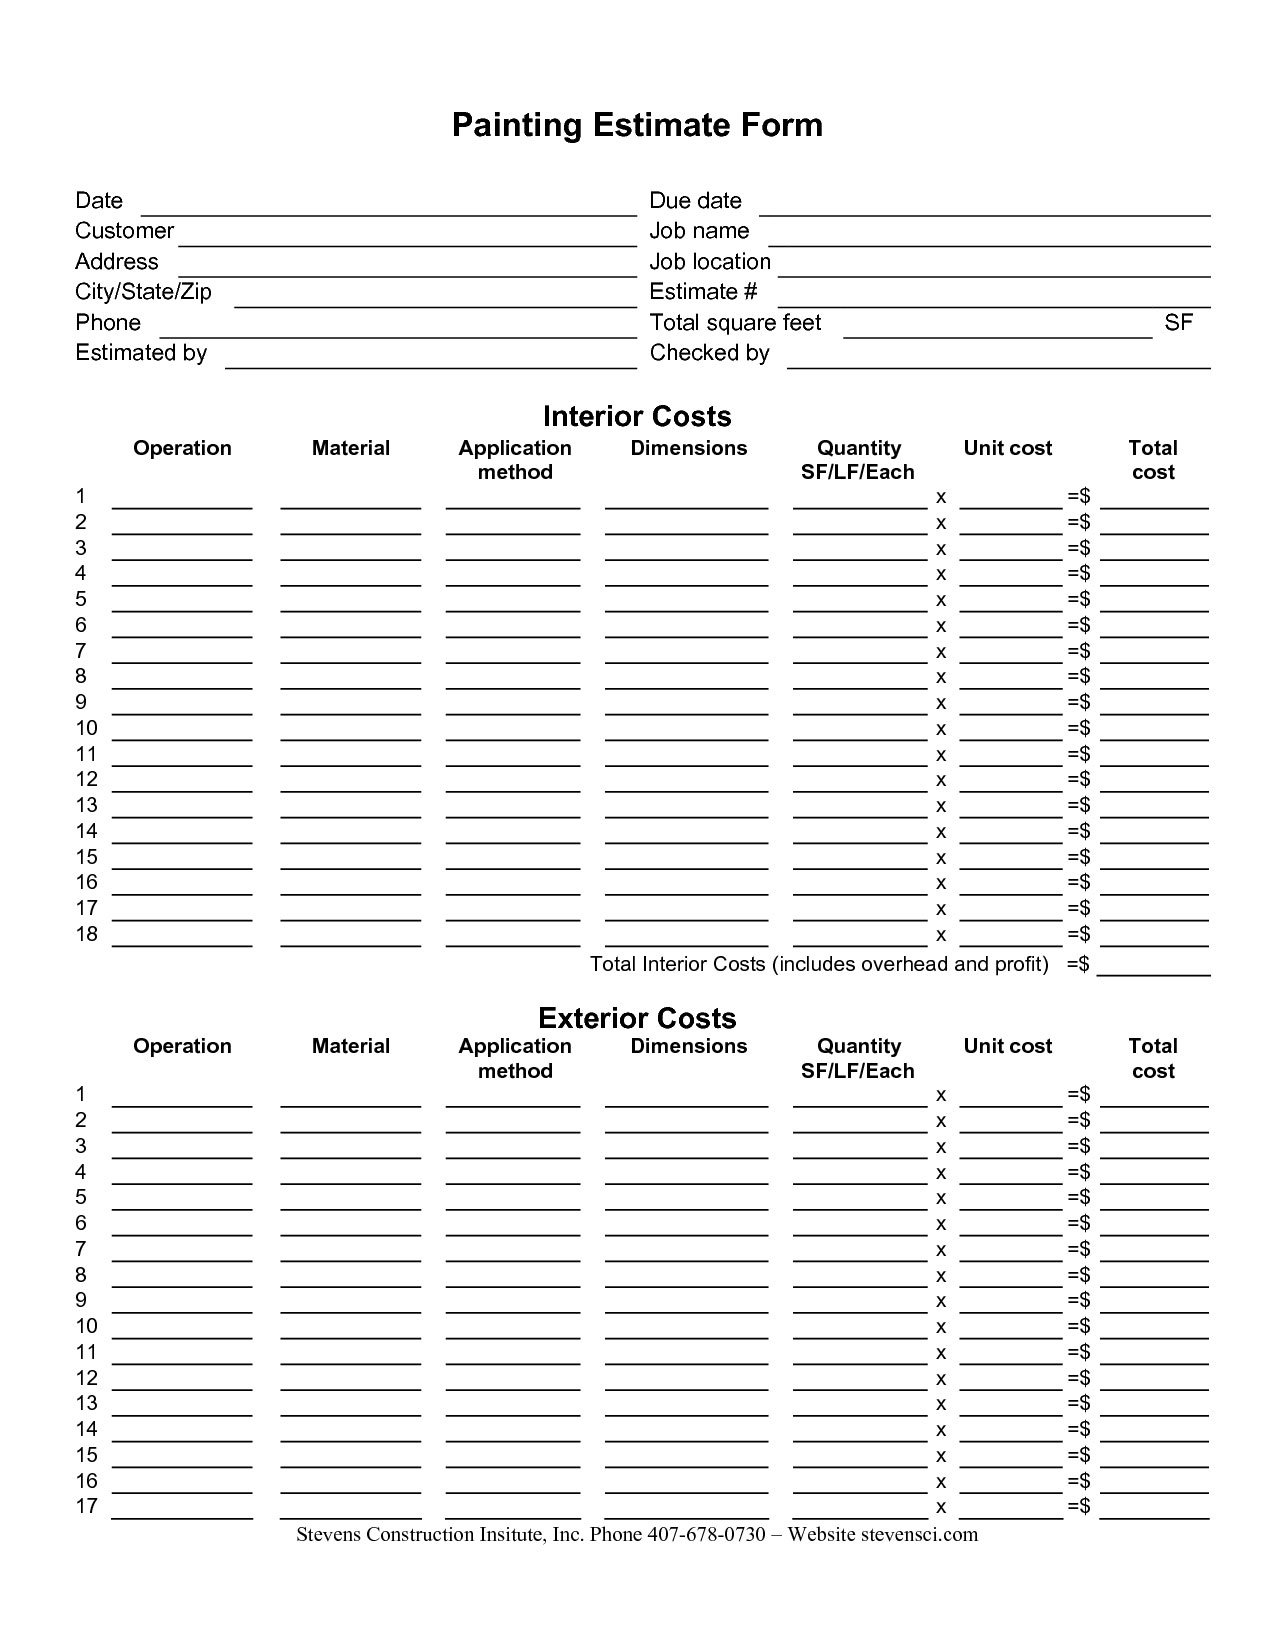 Painting Estimate Sheet Templates